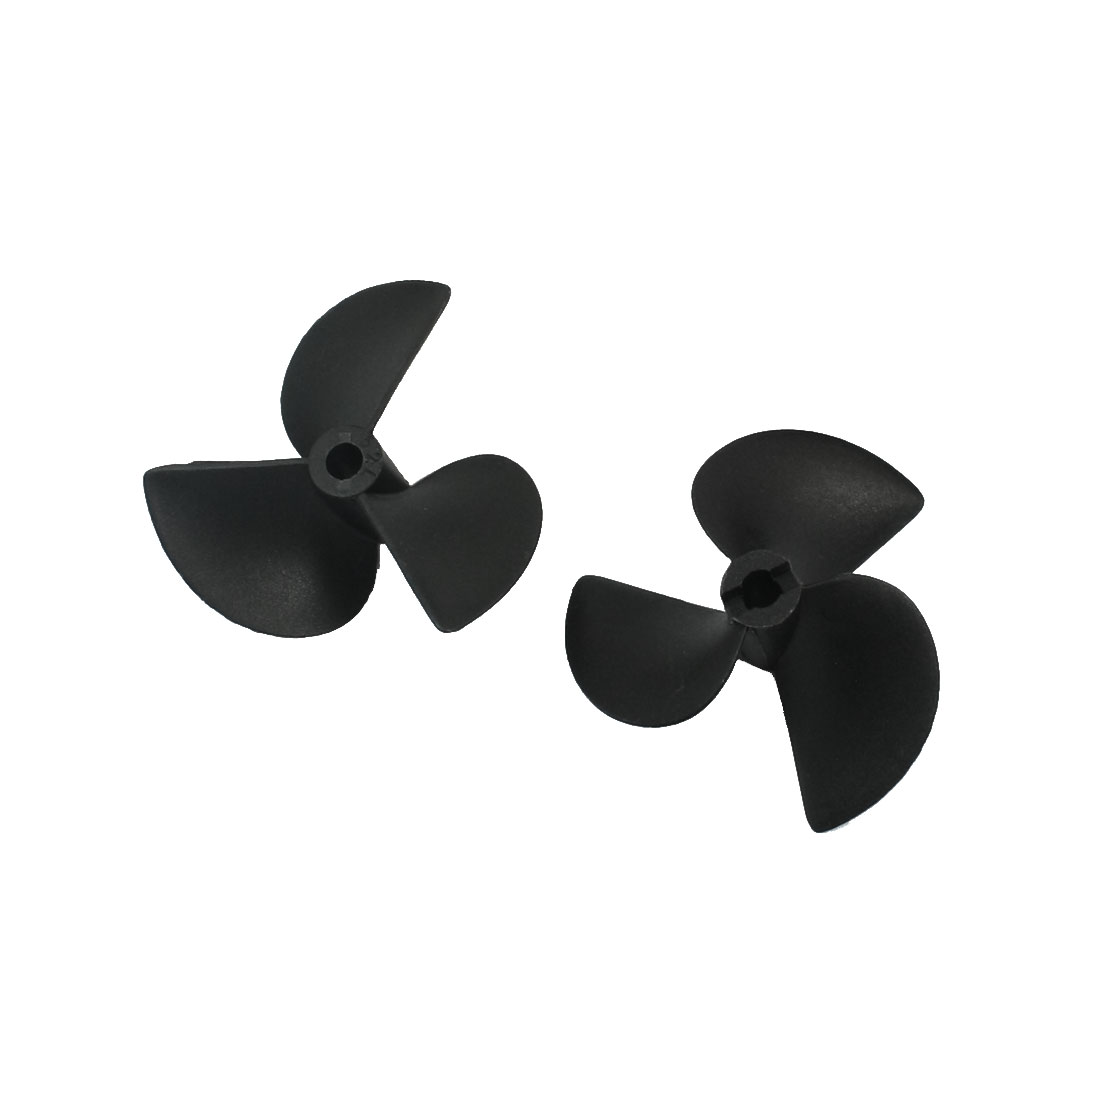 "Pair 5240 52mm Dia 40mm Pitch Black Plastic 3 Vanes CW/CCW Positive Reverse Propeller Prop for 3/16"" Shaft RC Ship Boat Model"